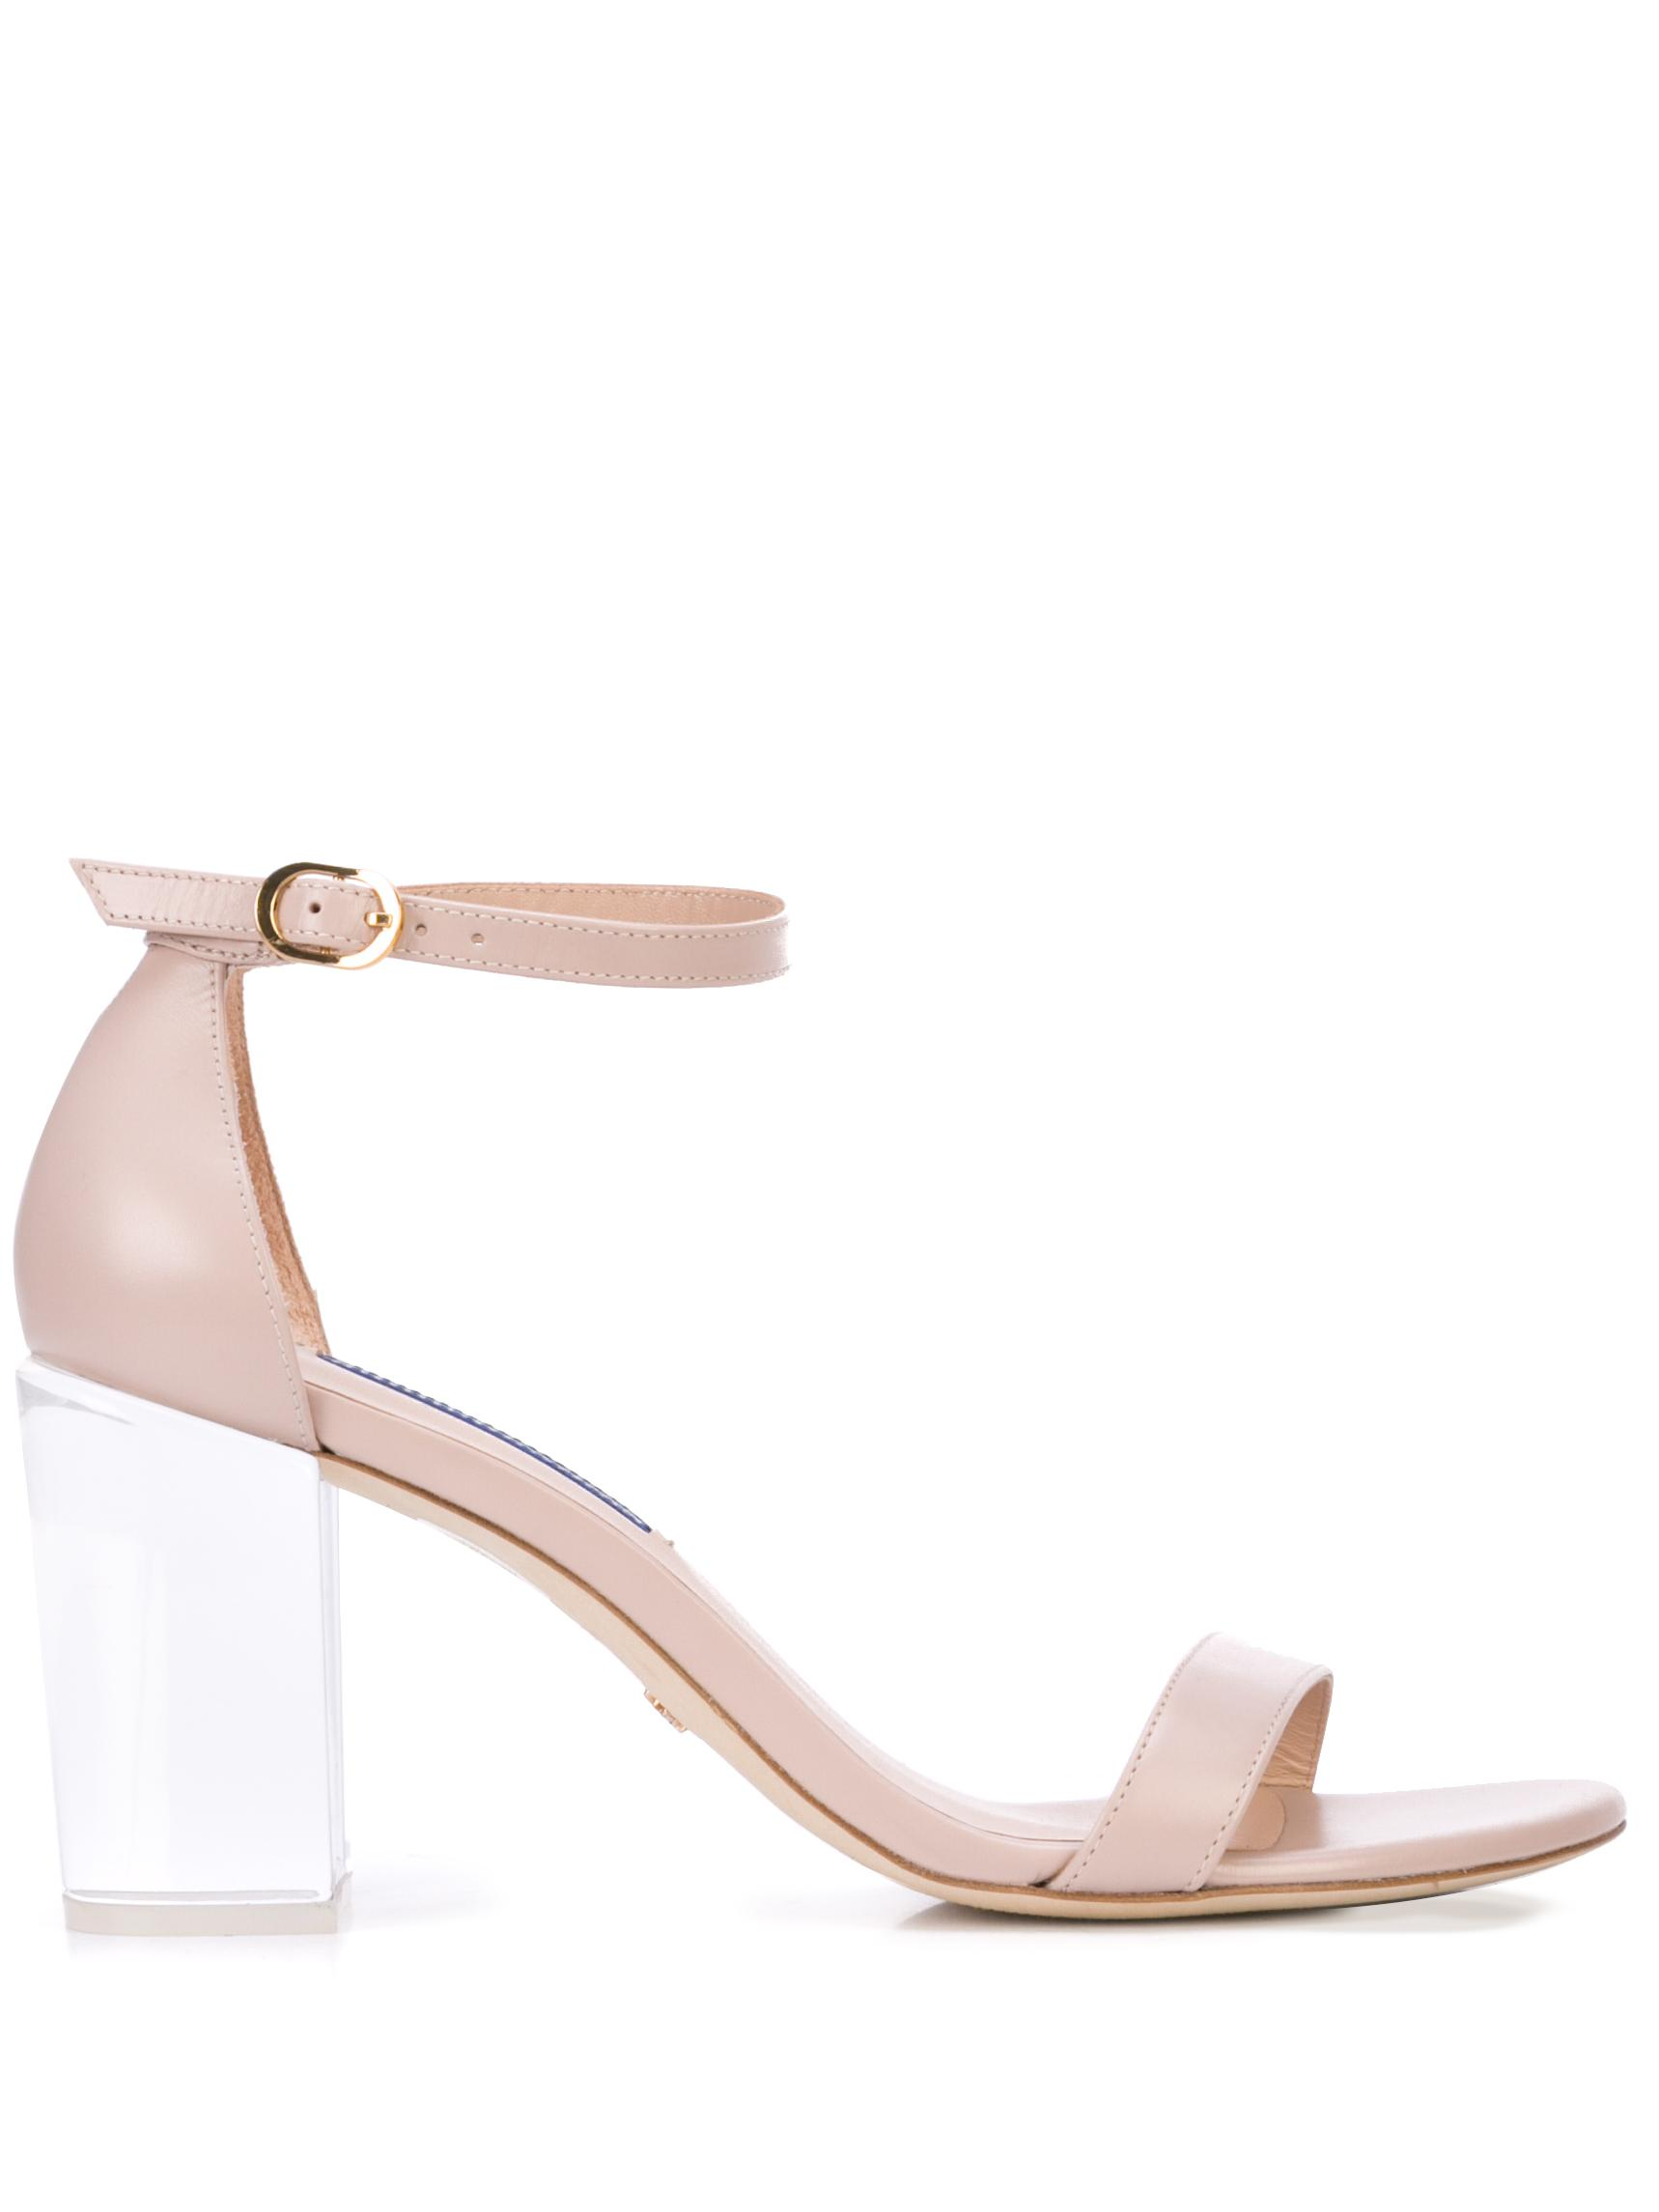 Lucite Block Heel Sandal With Ankle Strap Item # NEARLYNUDE-LUCITE